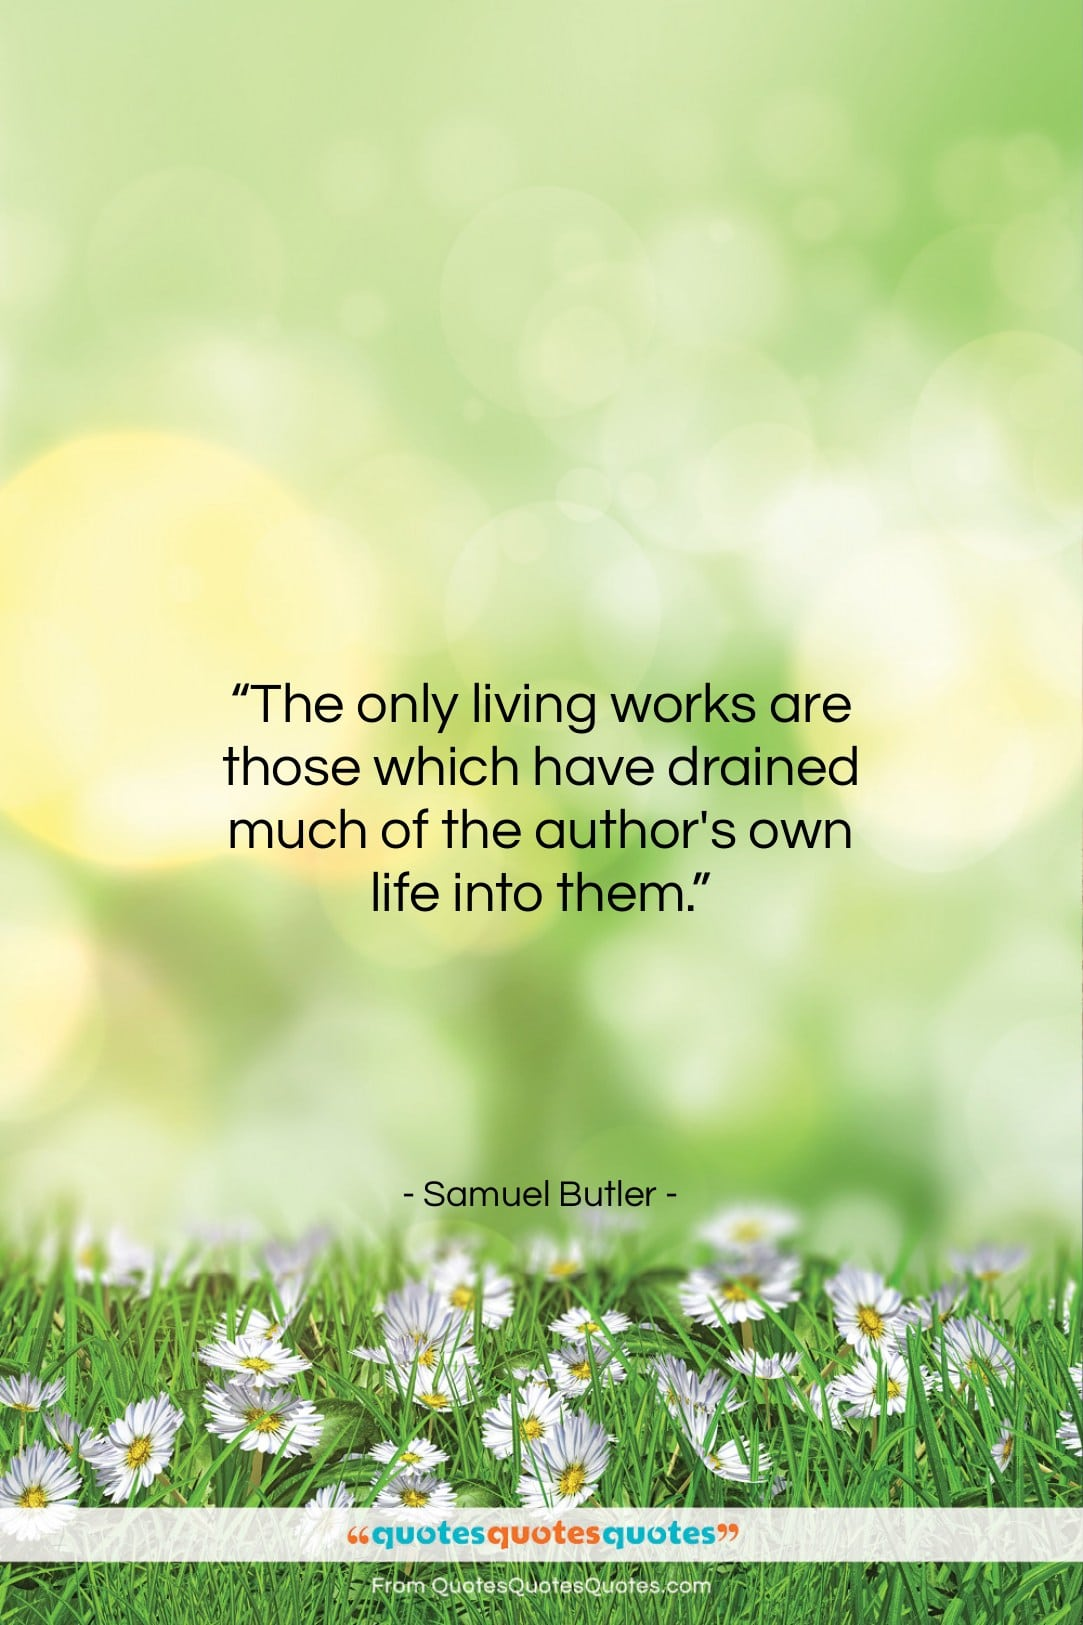 """Samuel Butler quote: """"The only living works are those which…""""- at QuotesQuotesQuotes.com"""